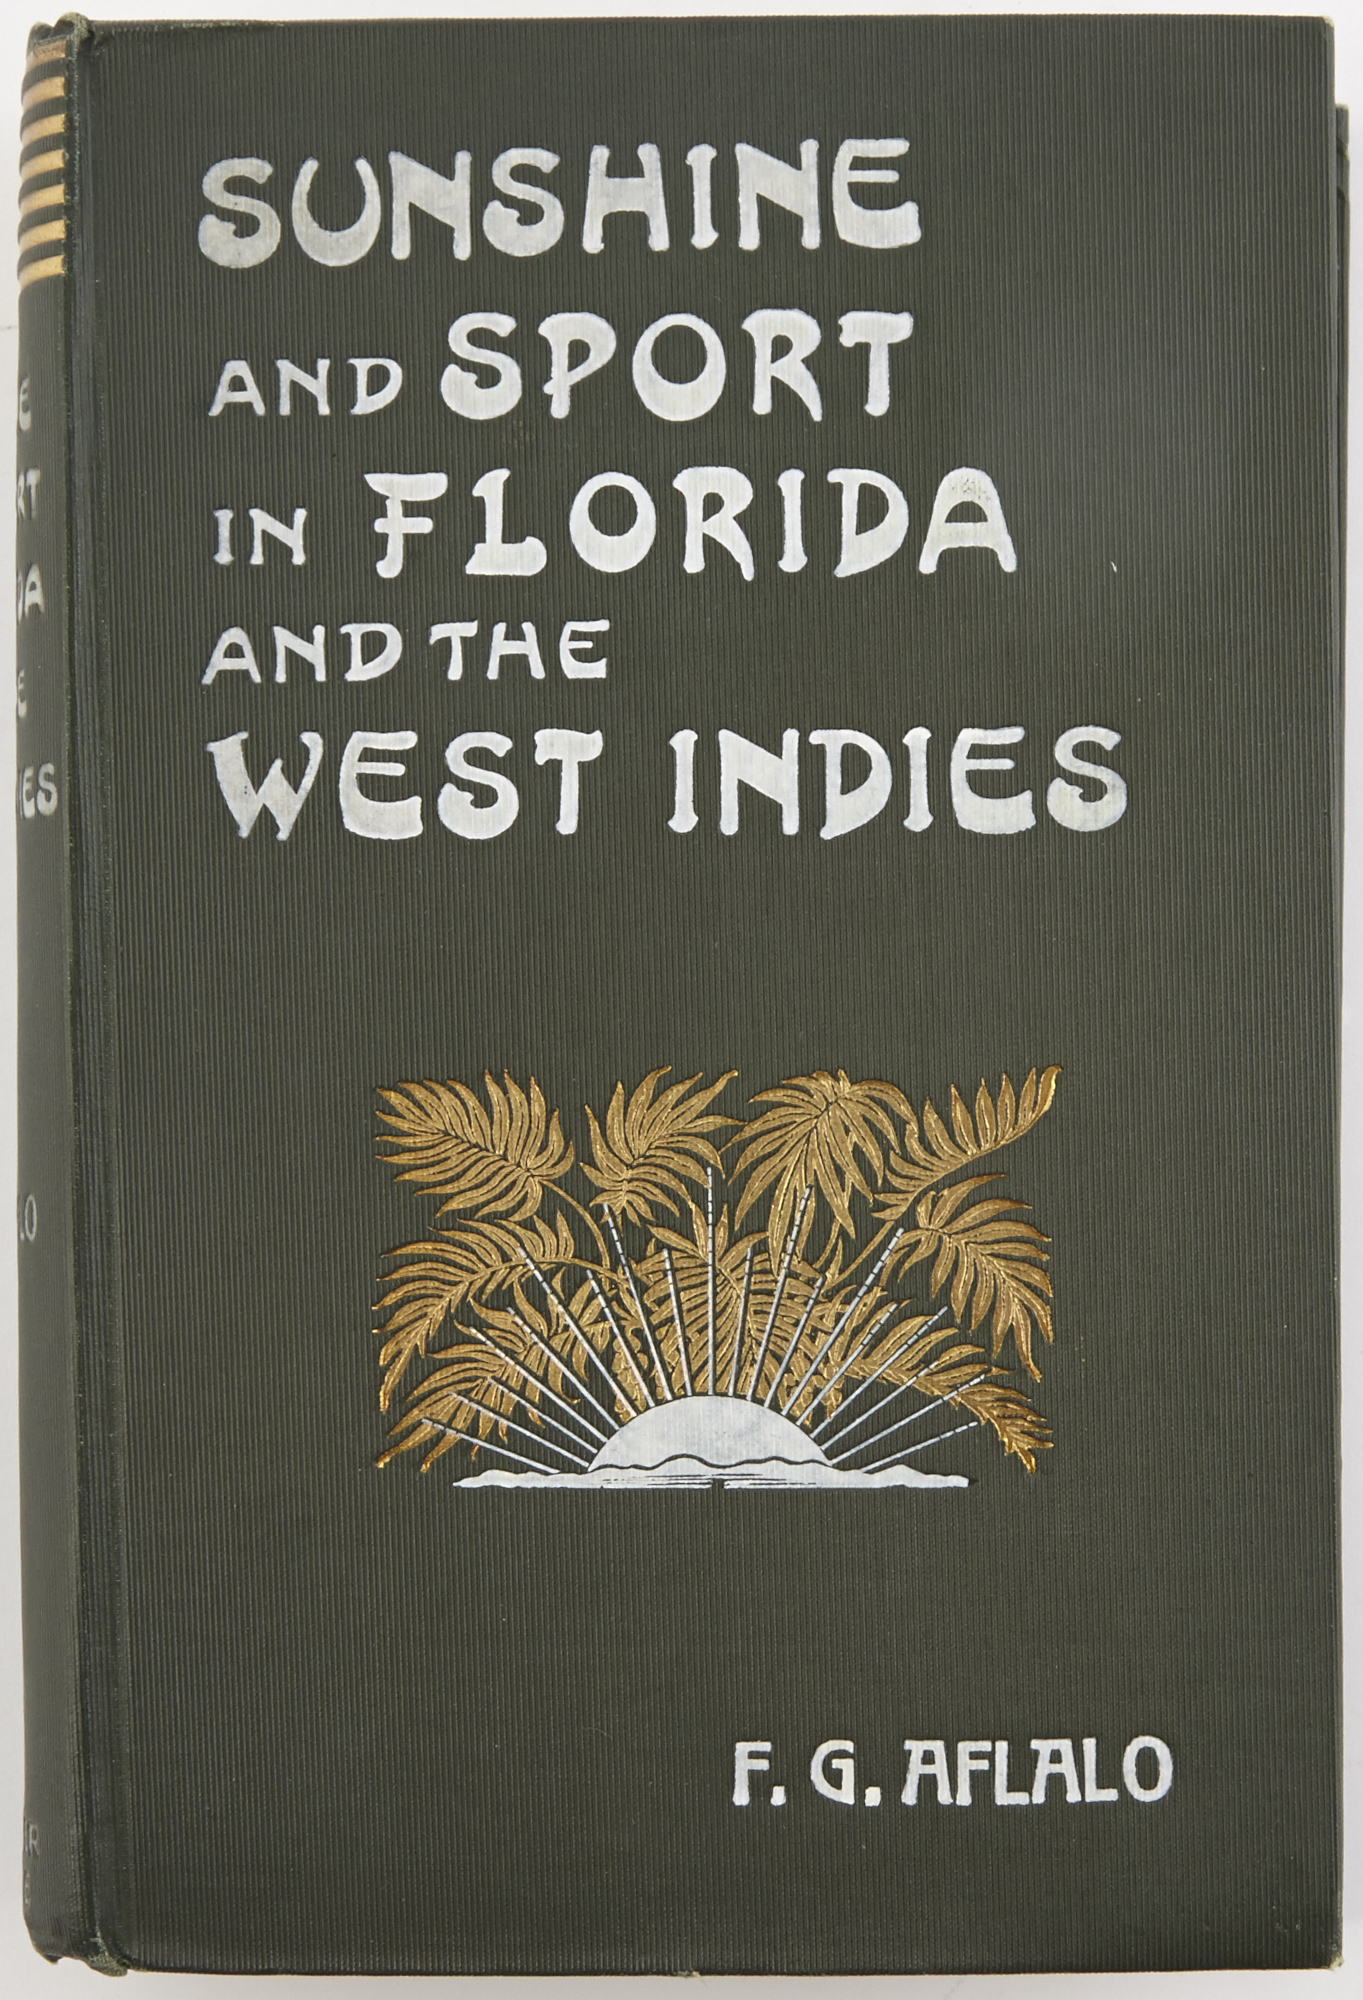 Lot image - AFLALO, F.G.  Sunshine and Sport in Florida and the West Indies.